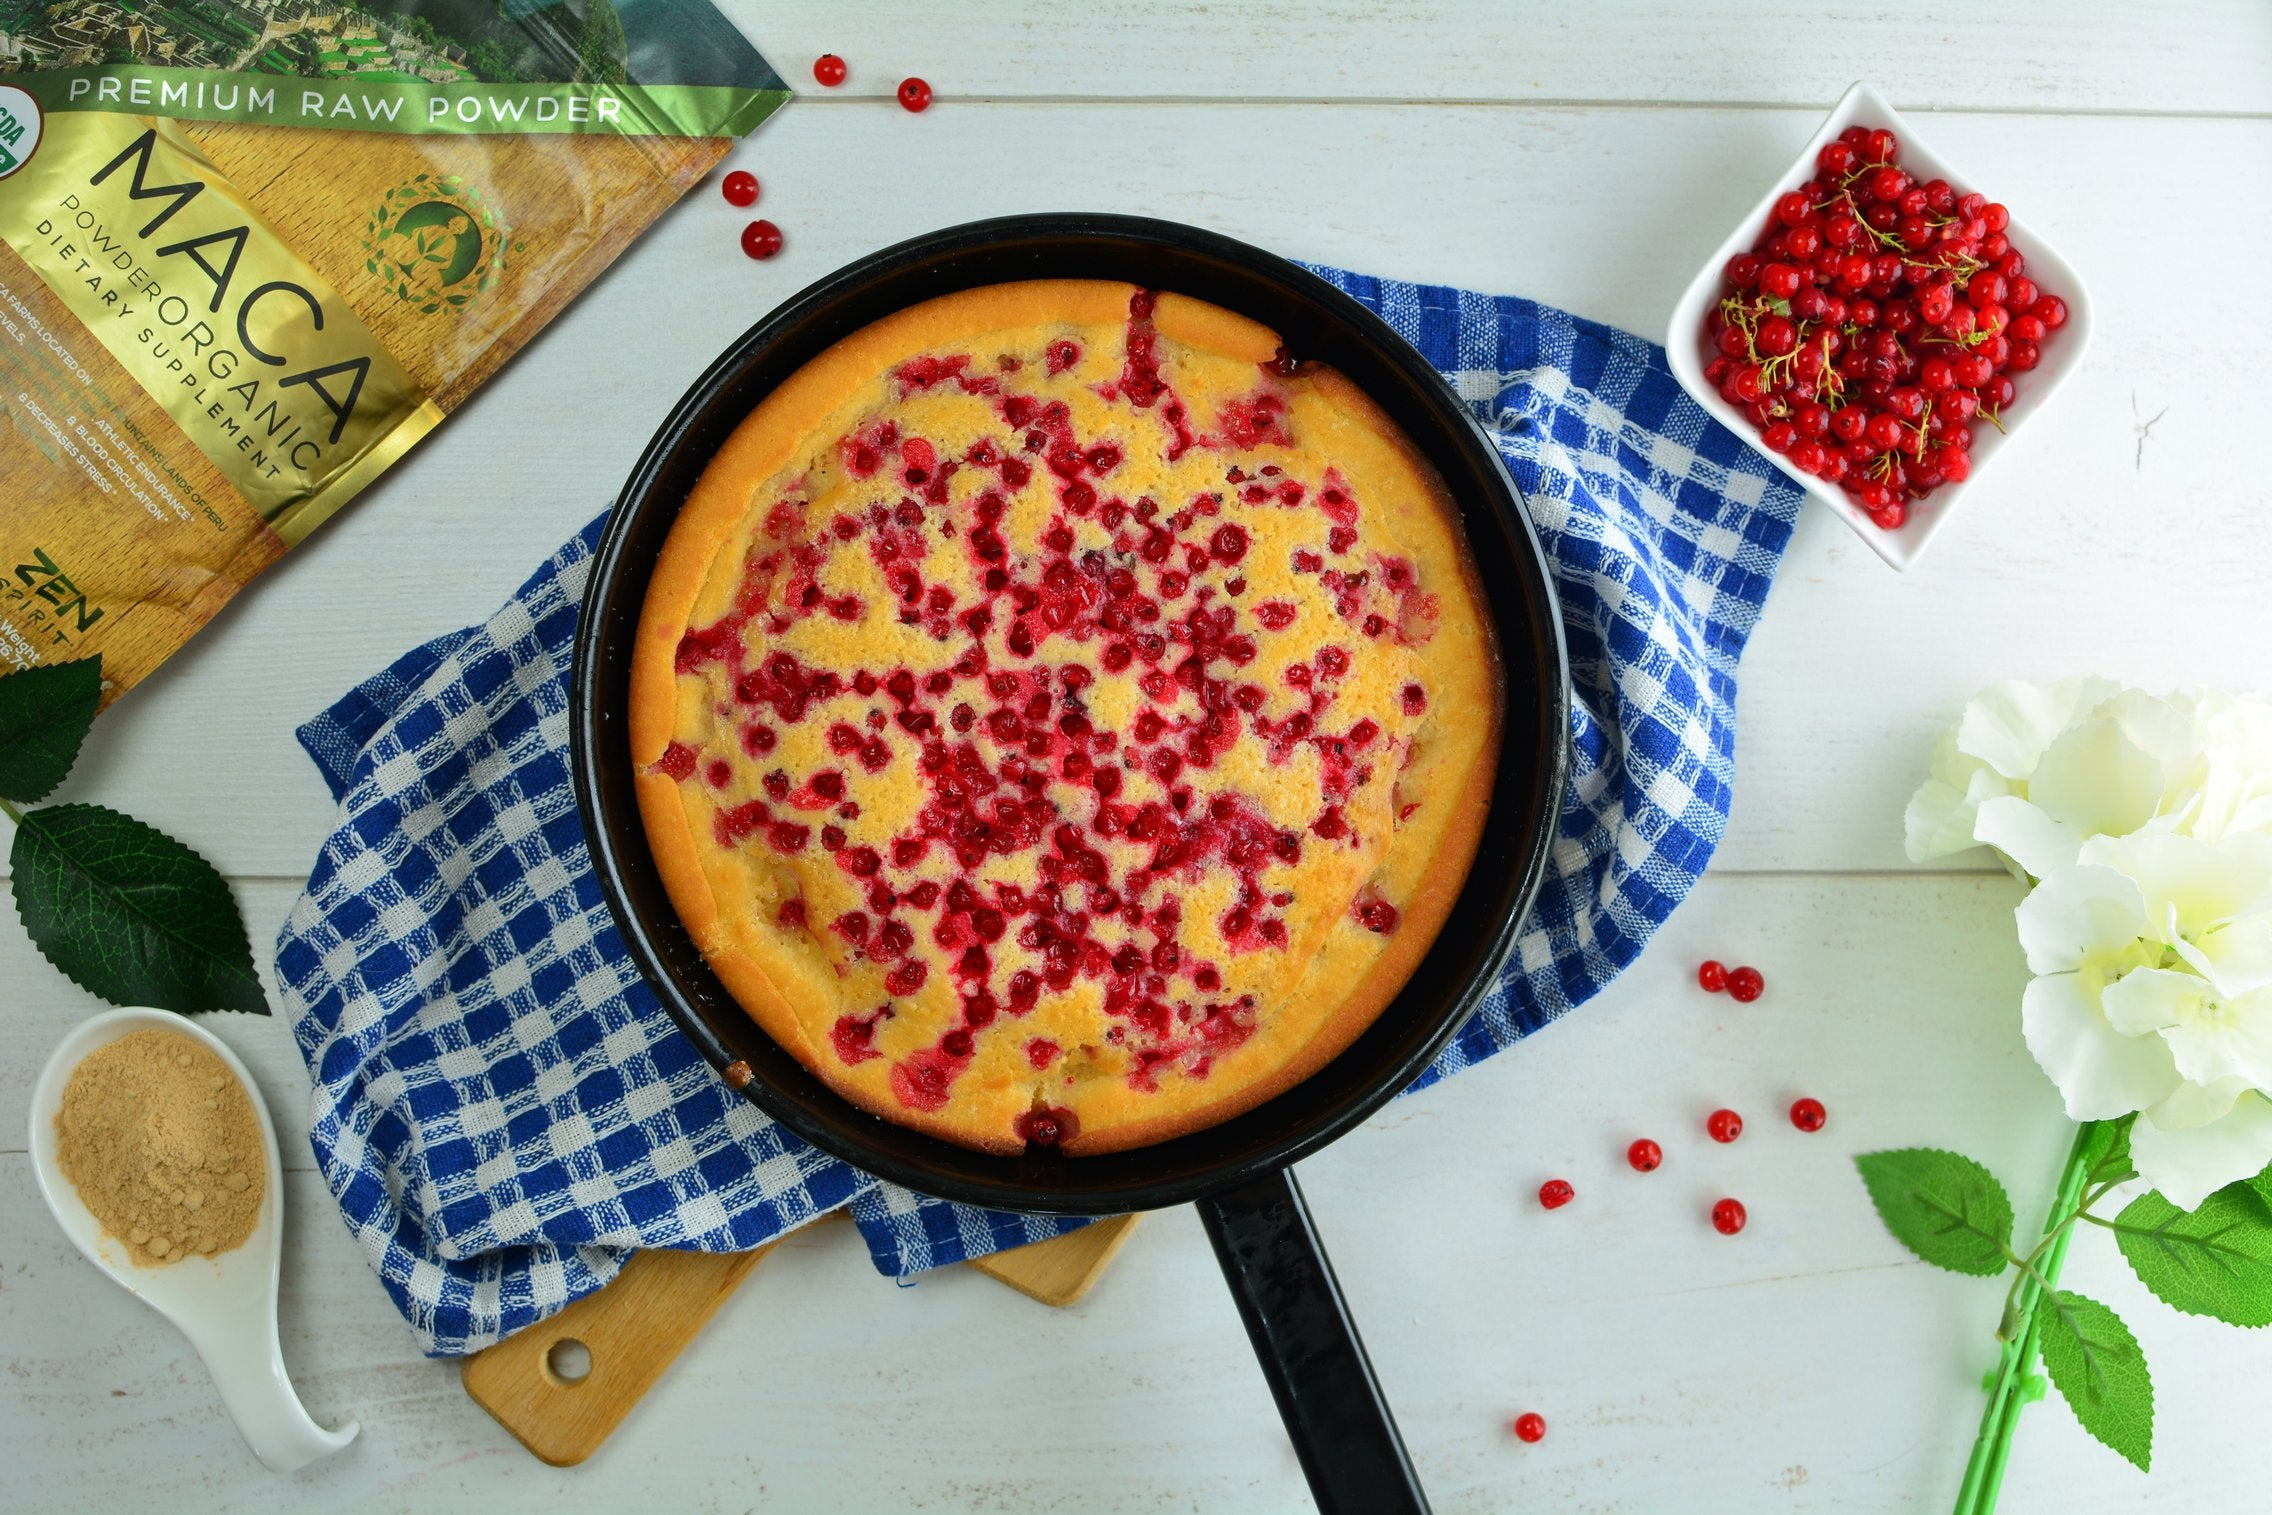 Finished Oven Baked Maca Pancake with Berries